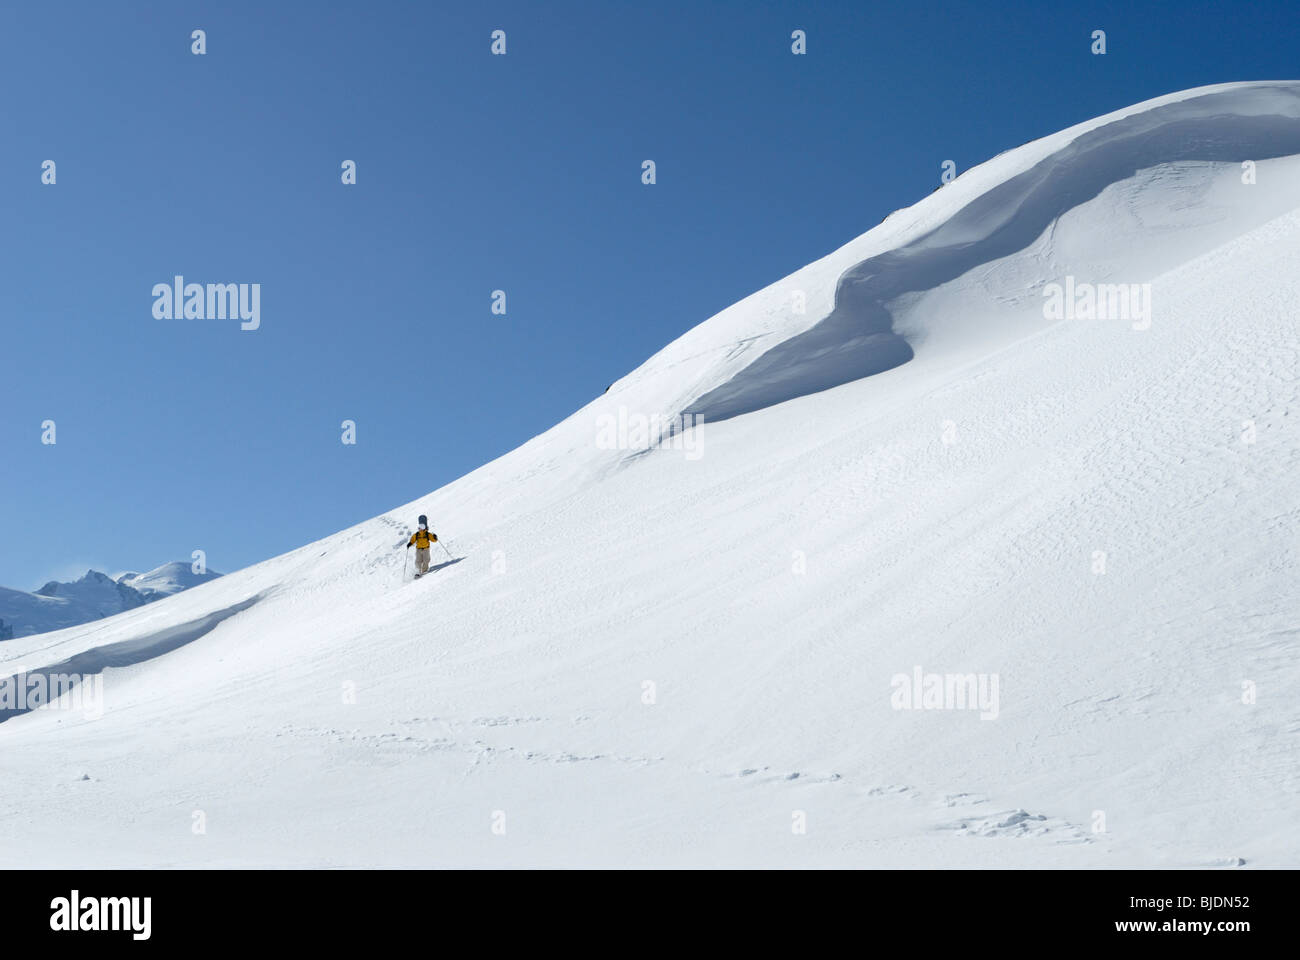 Snowboarder hiking with snow shoes carrying his board in off-piste terrain, Chamonix, France - Stock Image